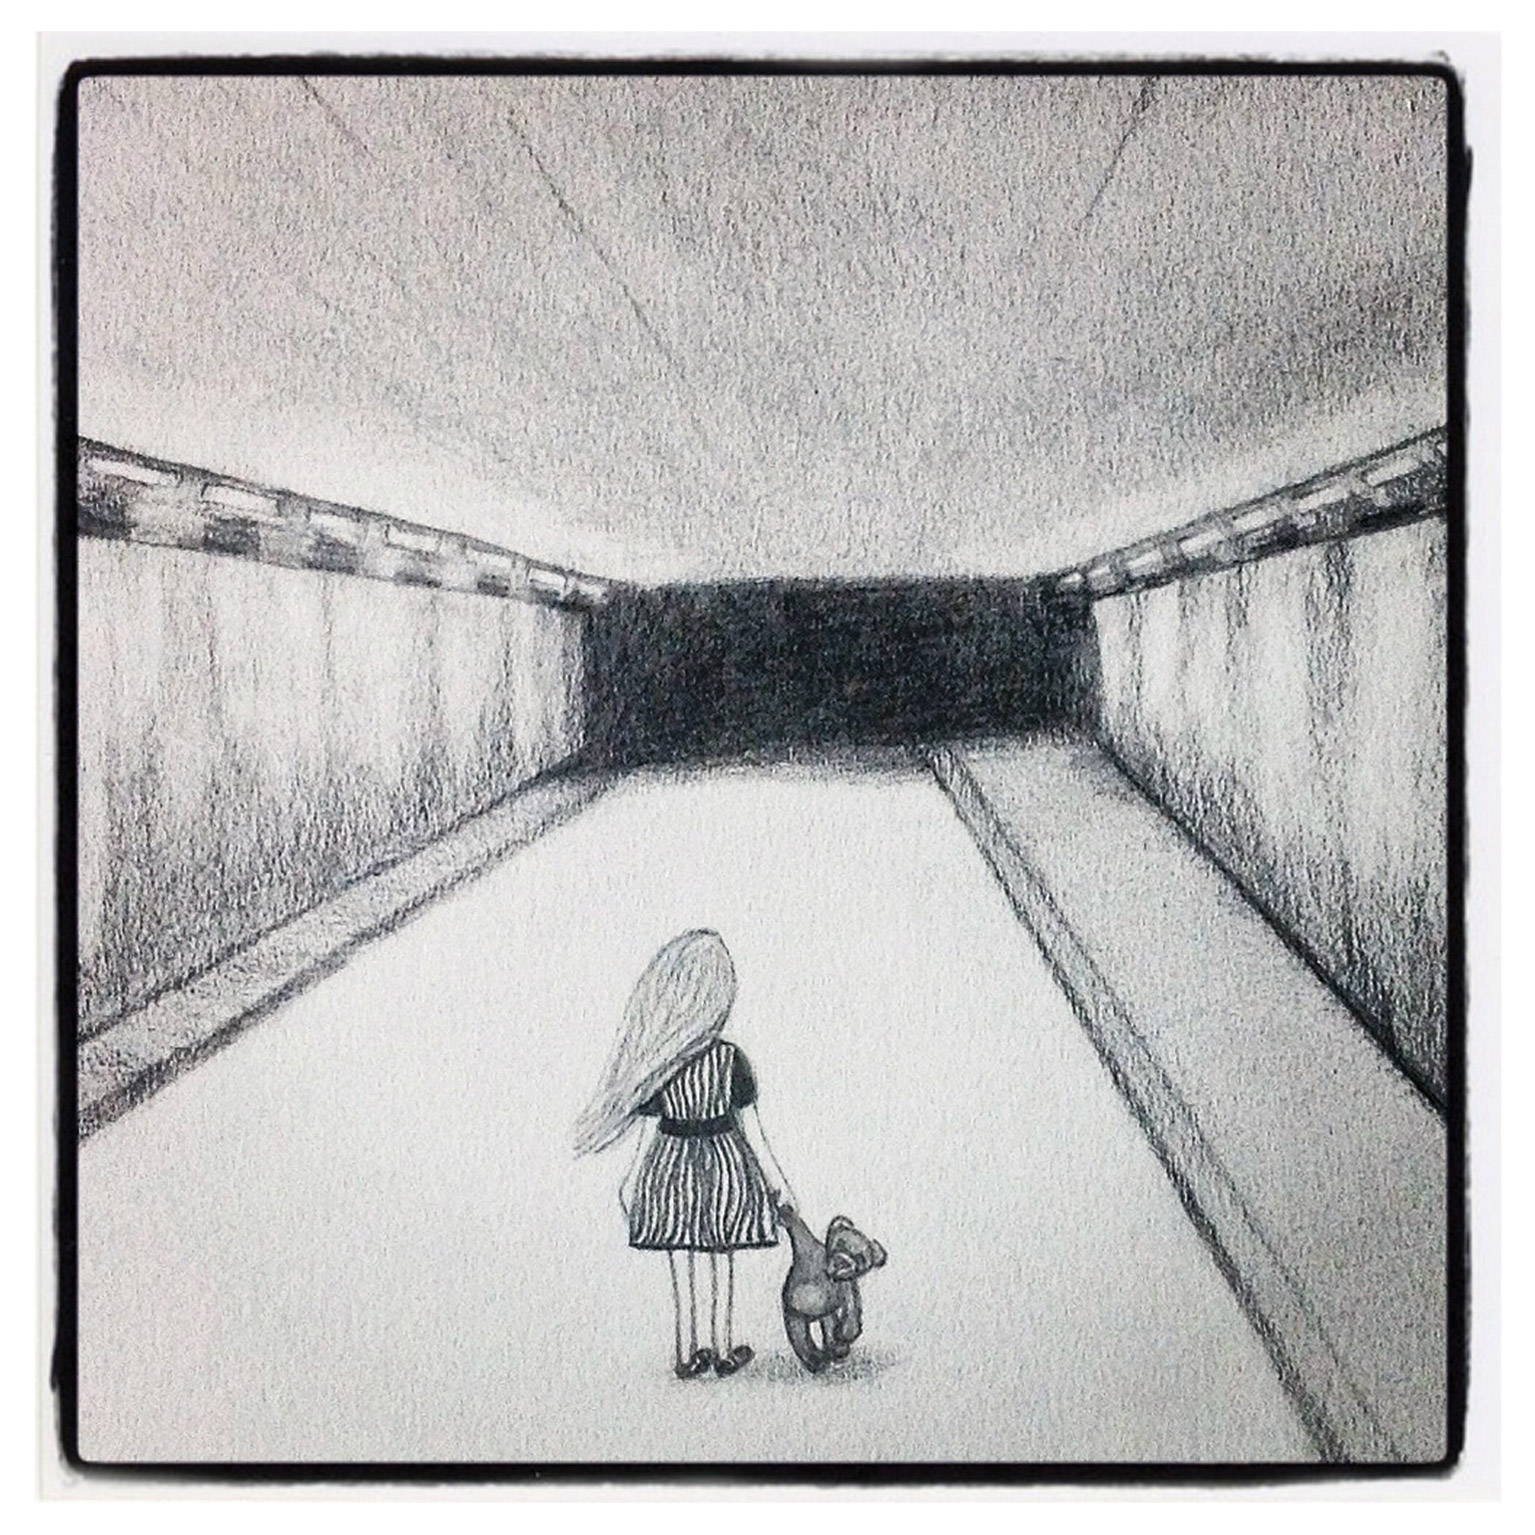 IN THE TUNNEL